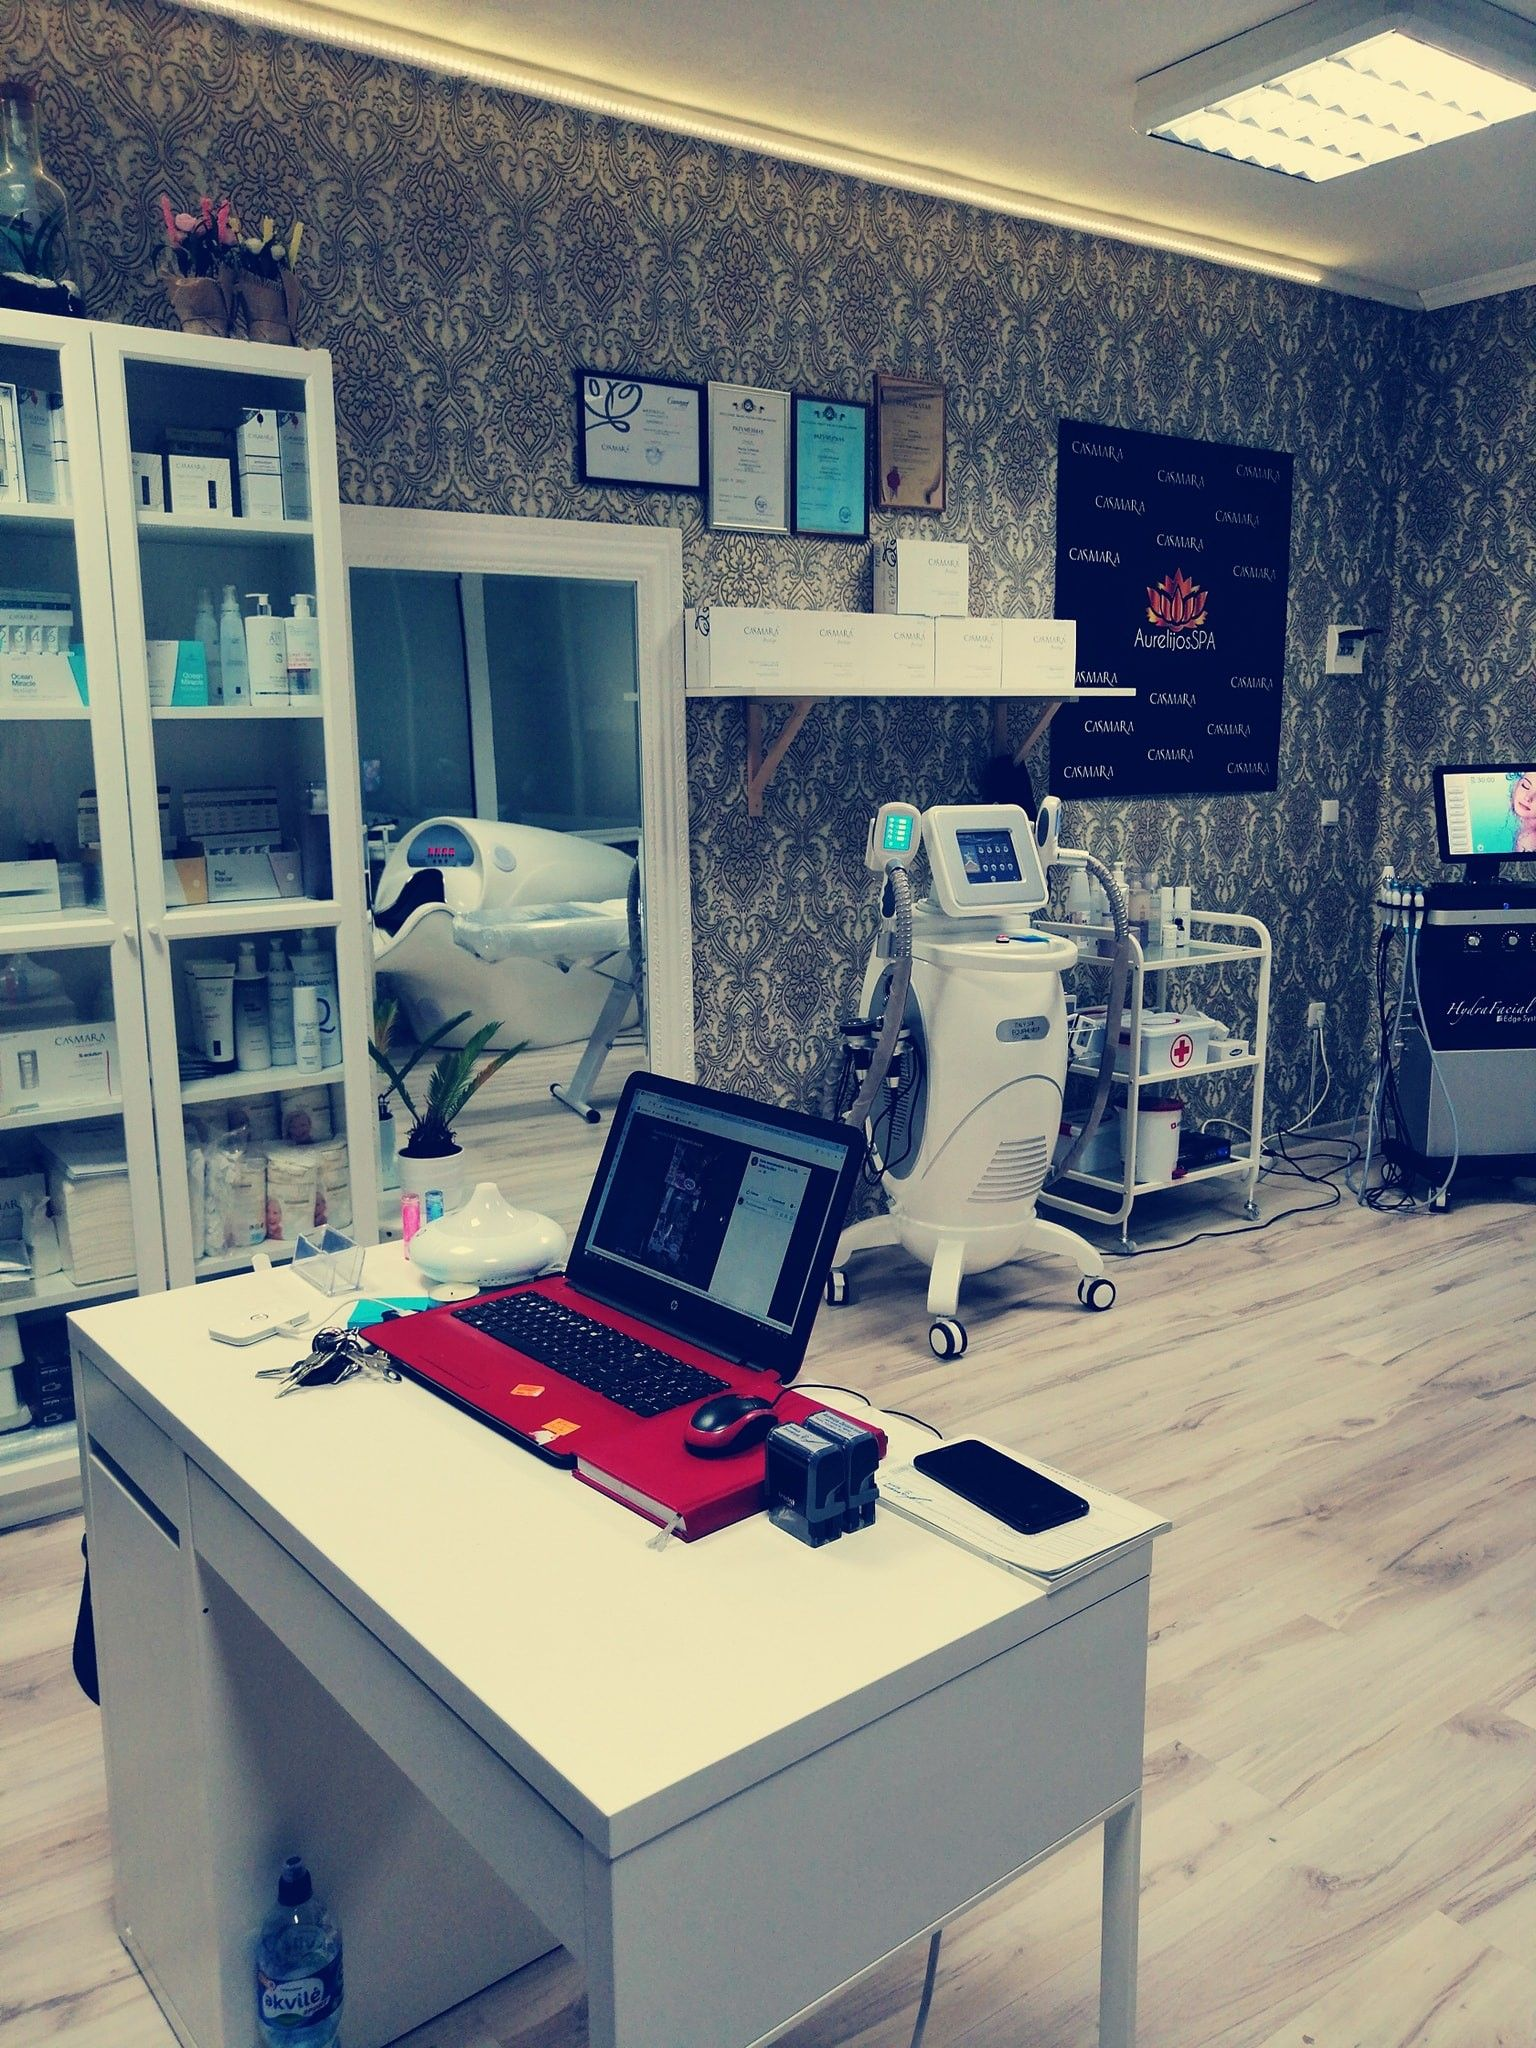 Hydra dermabrasion equipment - Cryotherapy equipment - VelaShape - Serums with hyaluronic acid - Training to work - Purchase in installments - AurelijosSPA